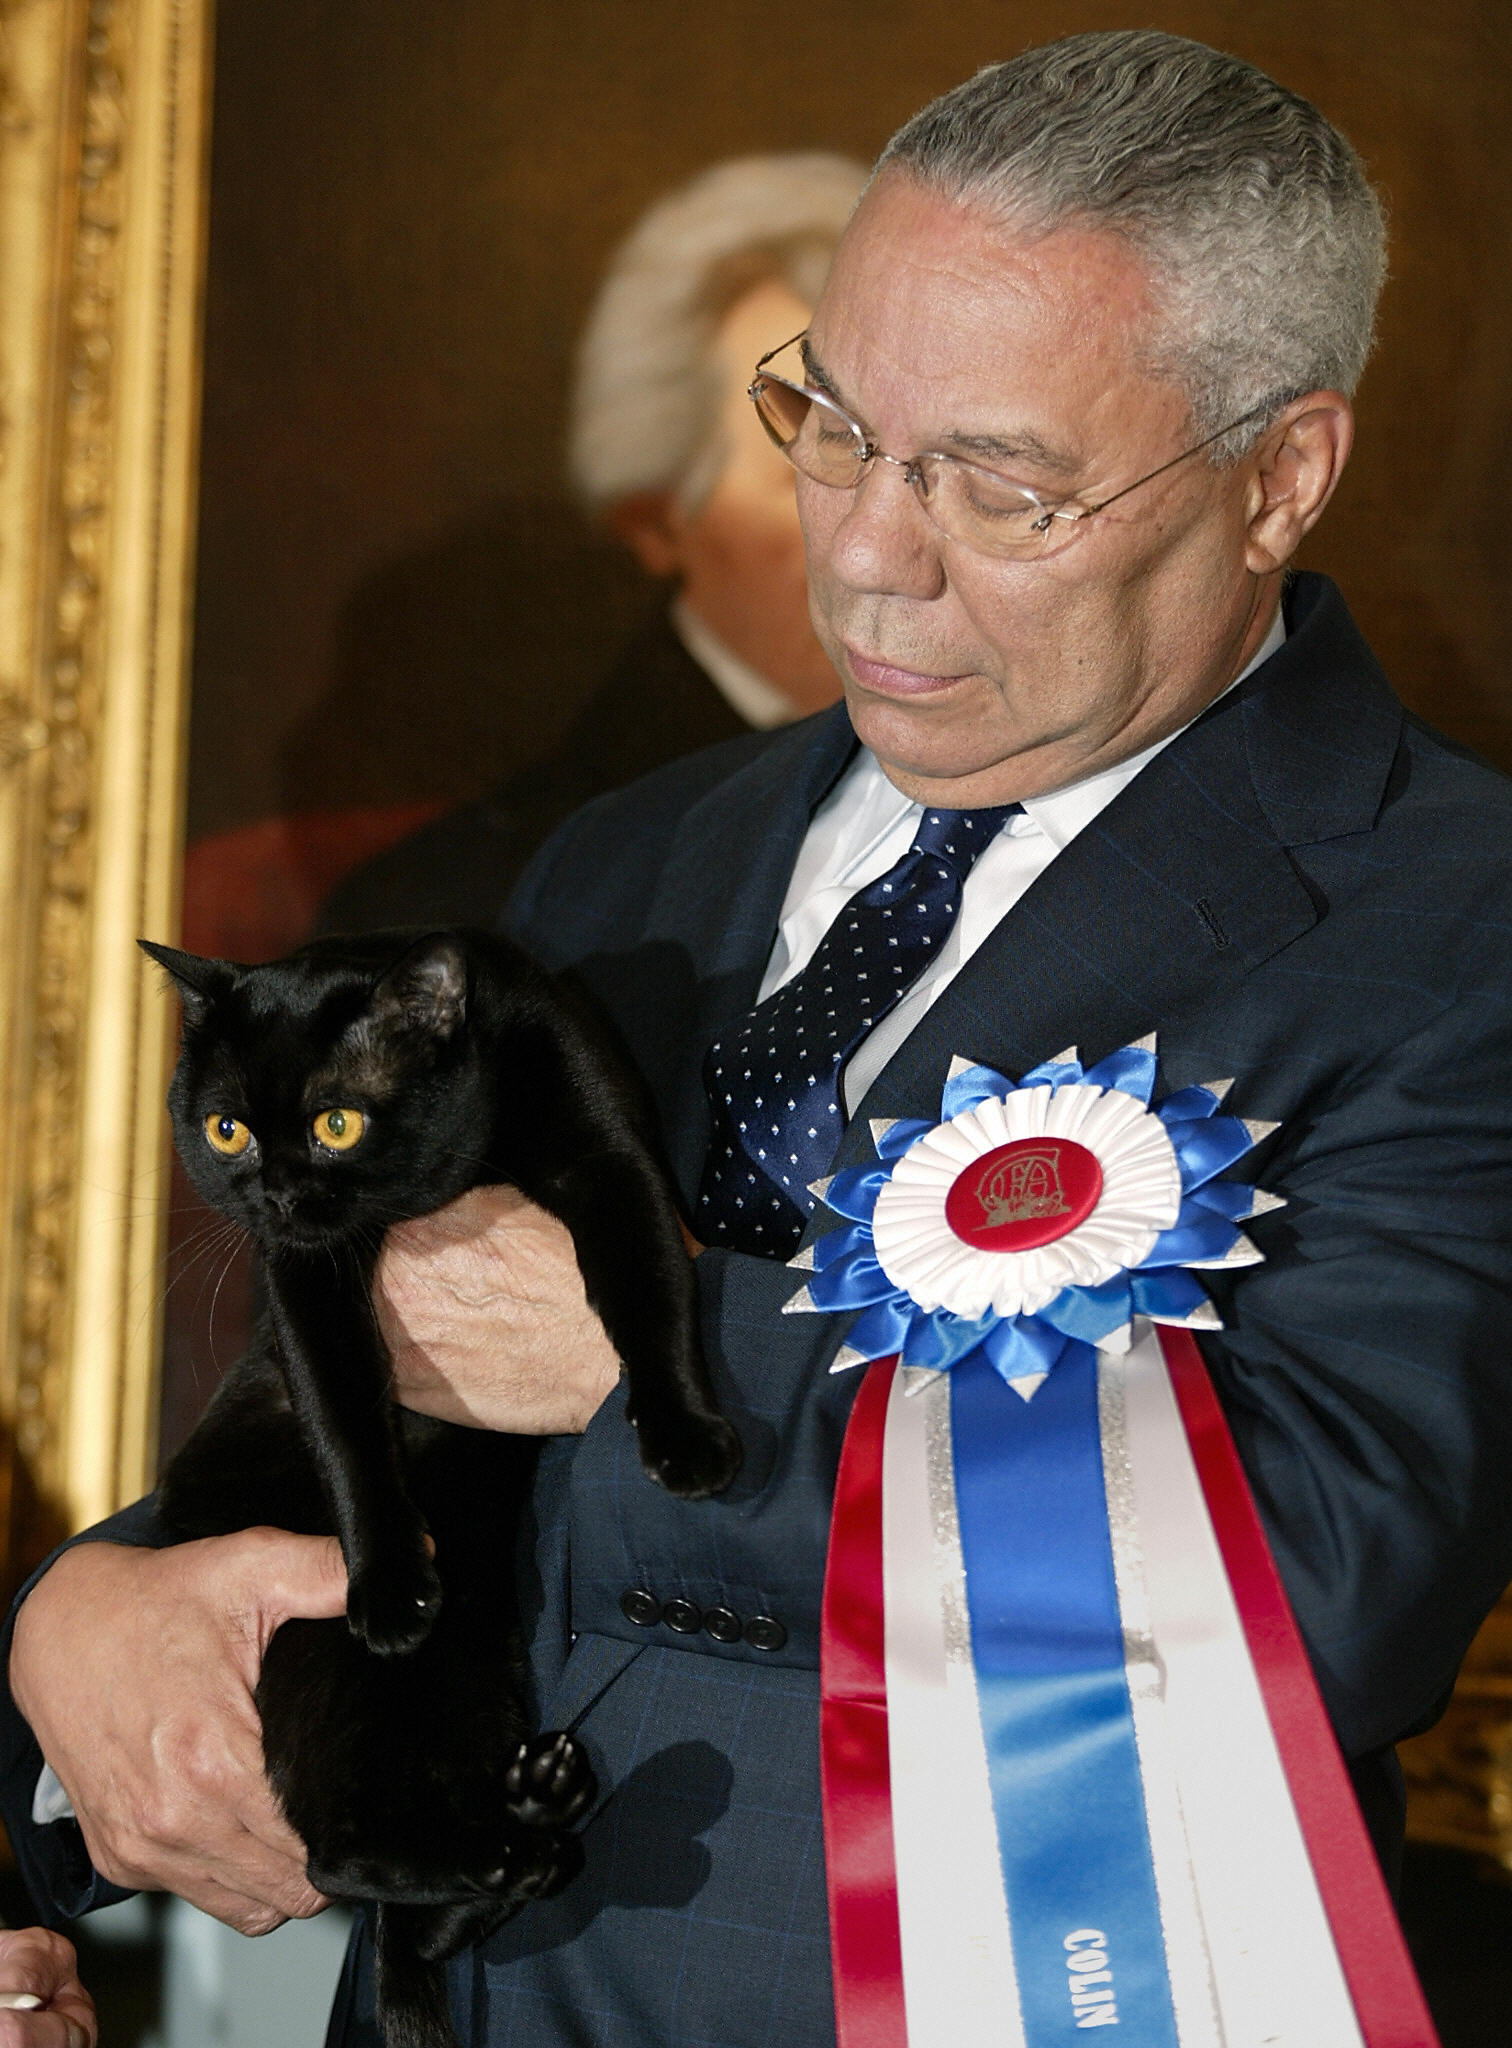 7. Double Colin Powell